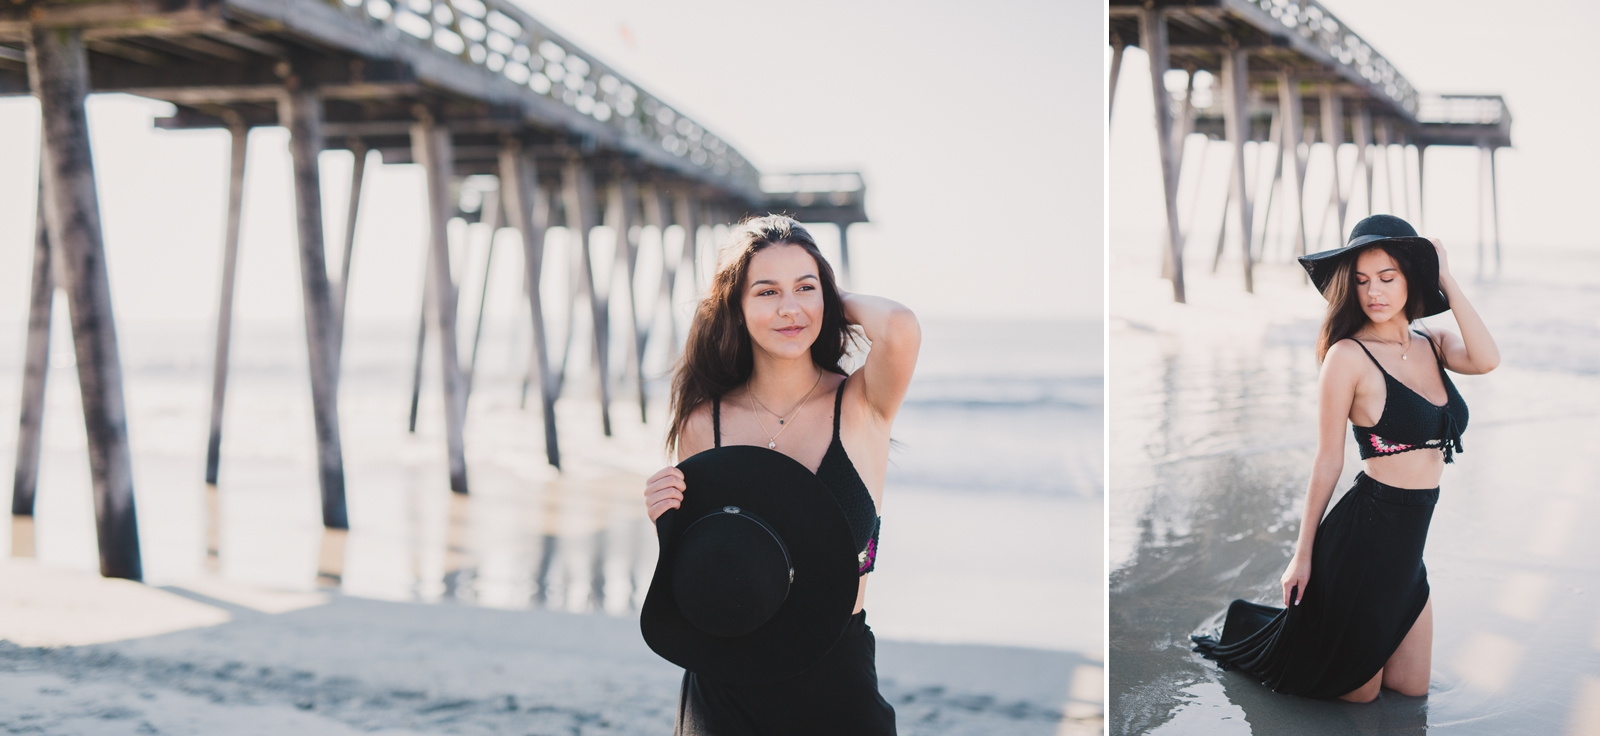 OCNJ Senior Portraits